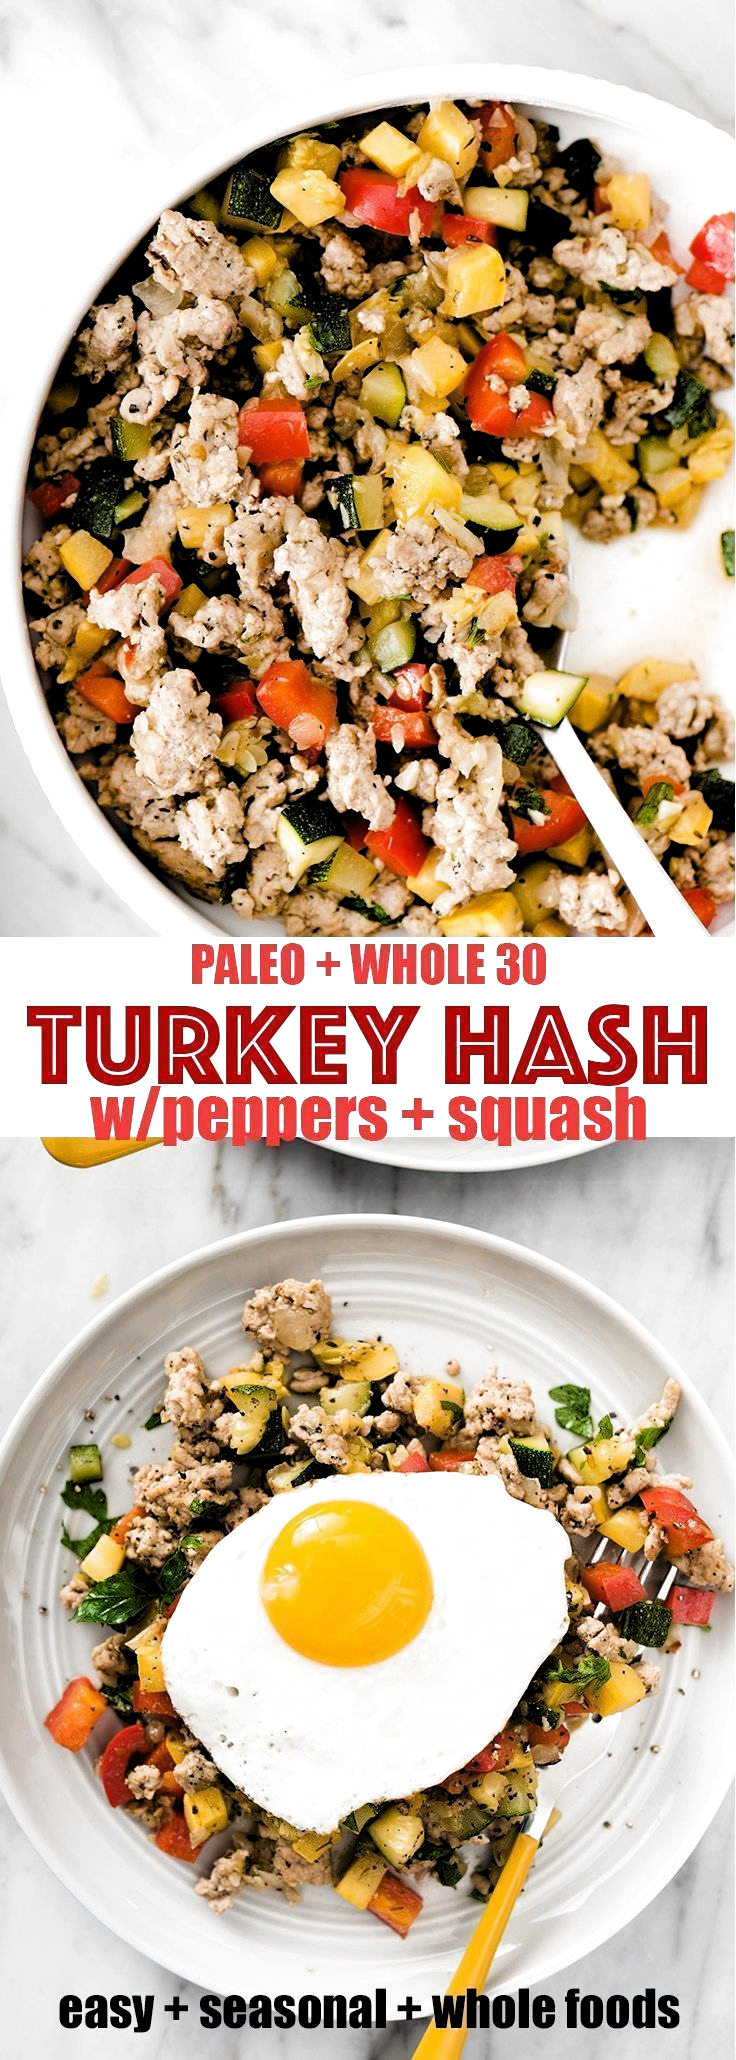 Ground turkey hash is one of my favorite paleo breakfast recipes. Its ready in less than 30 minutes, and is naturally paleo, whole 30 and gluten-free. #realfood #wholefood #paleo #whole30 #glutenfree